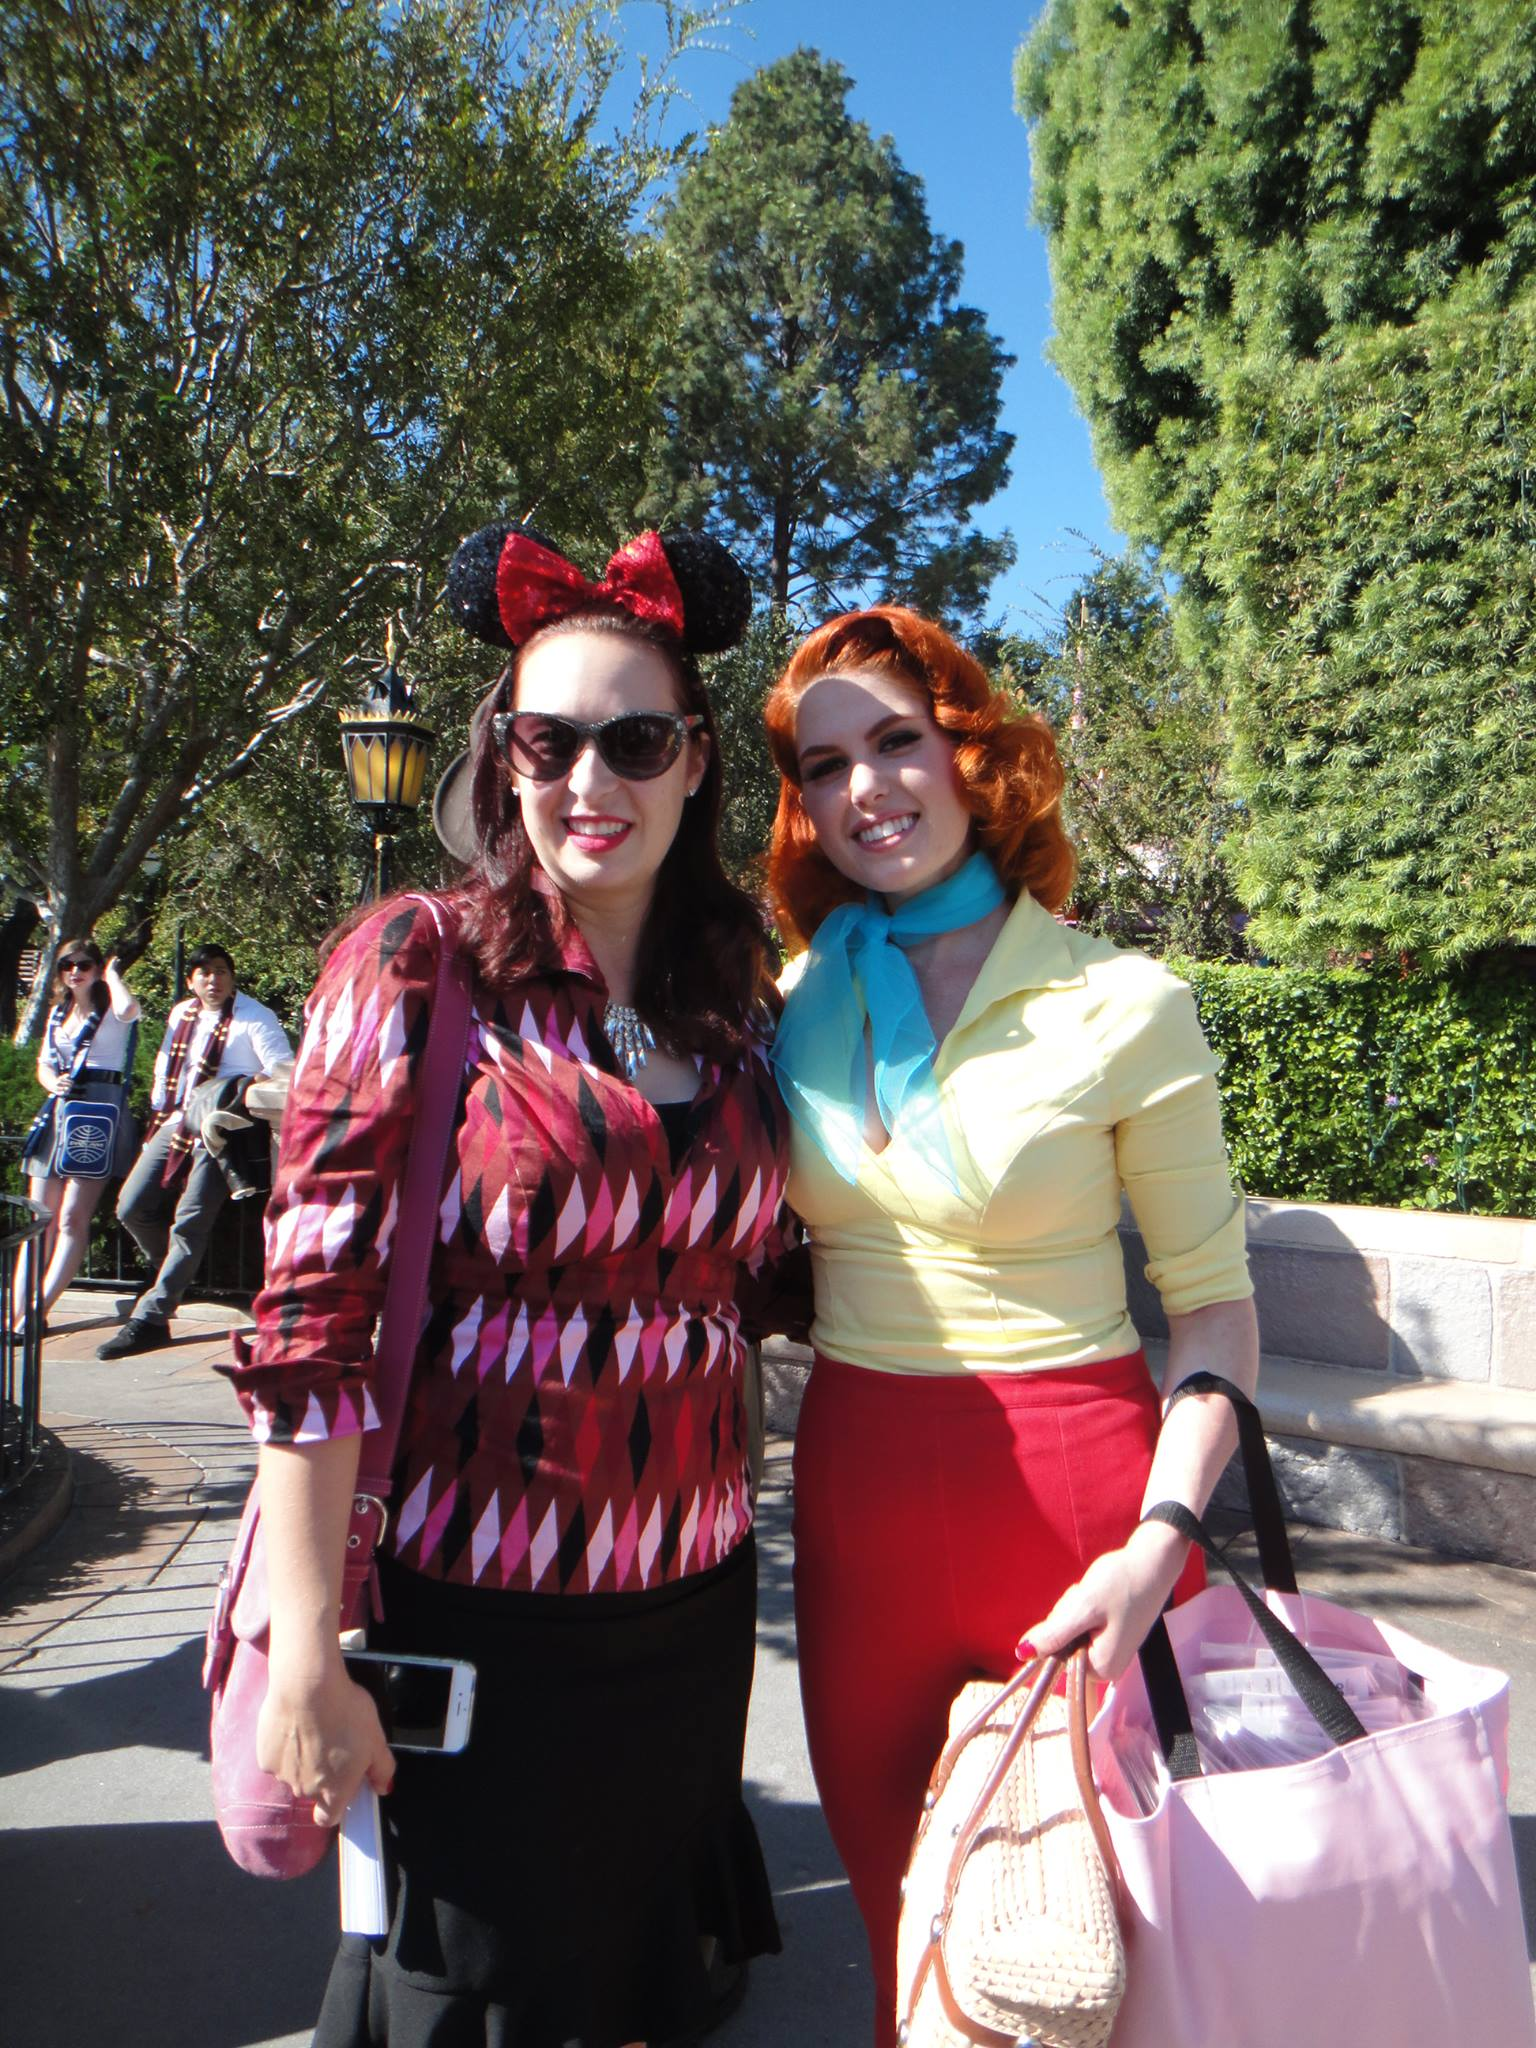 Strolling in Style at Pinup Parade in the Park